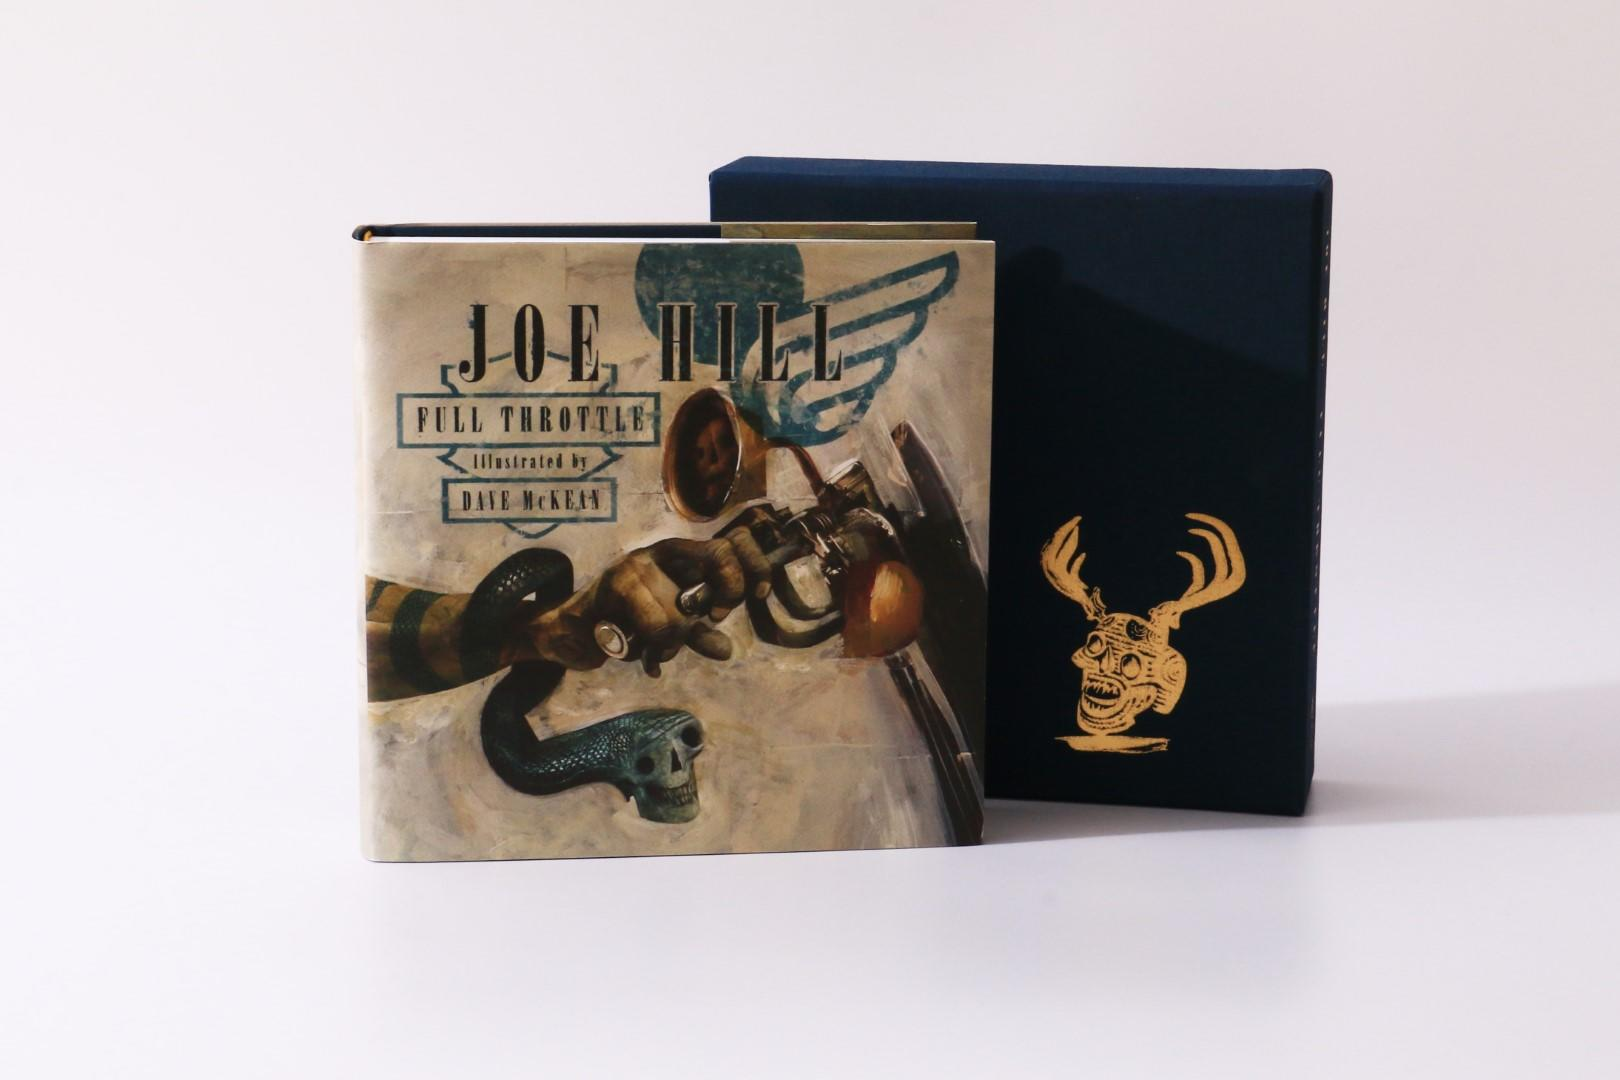 Joe Hill - Full Throttle - Subterranean Press, 2020, Signed Limited Edition.